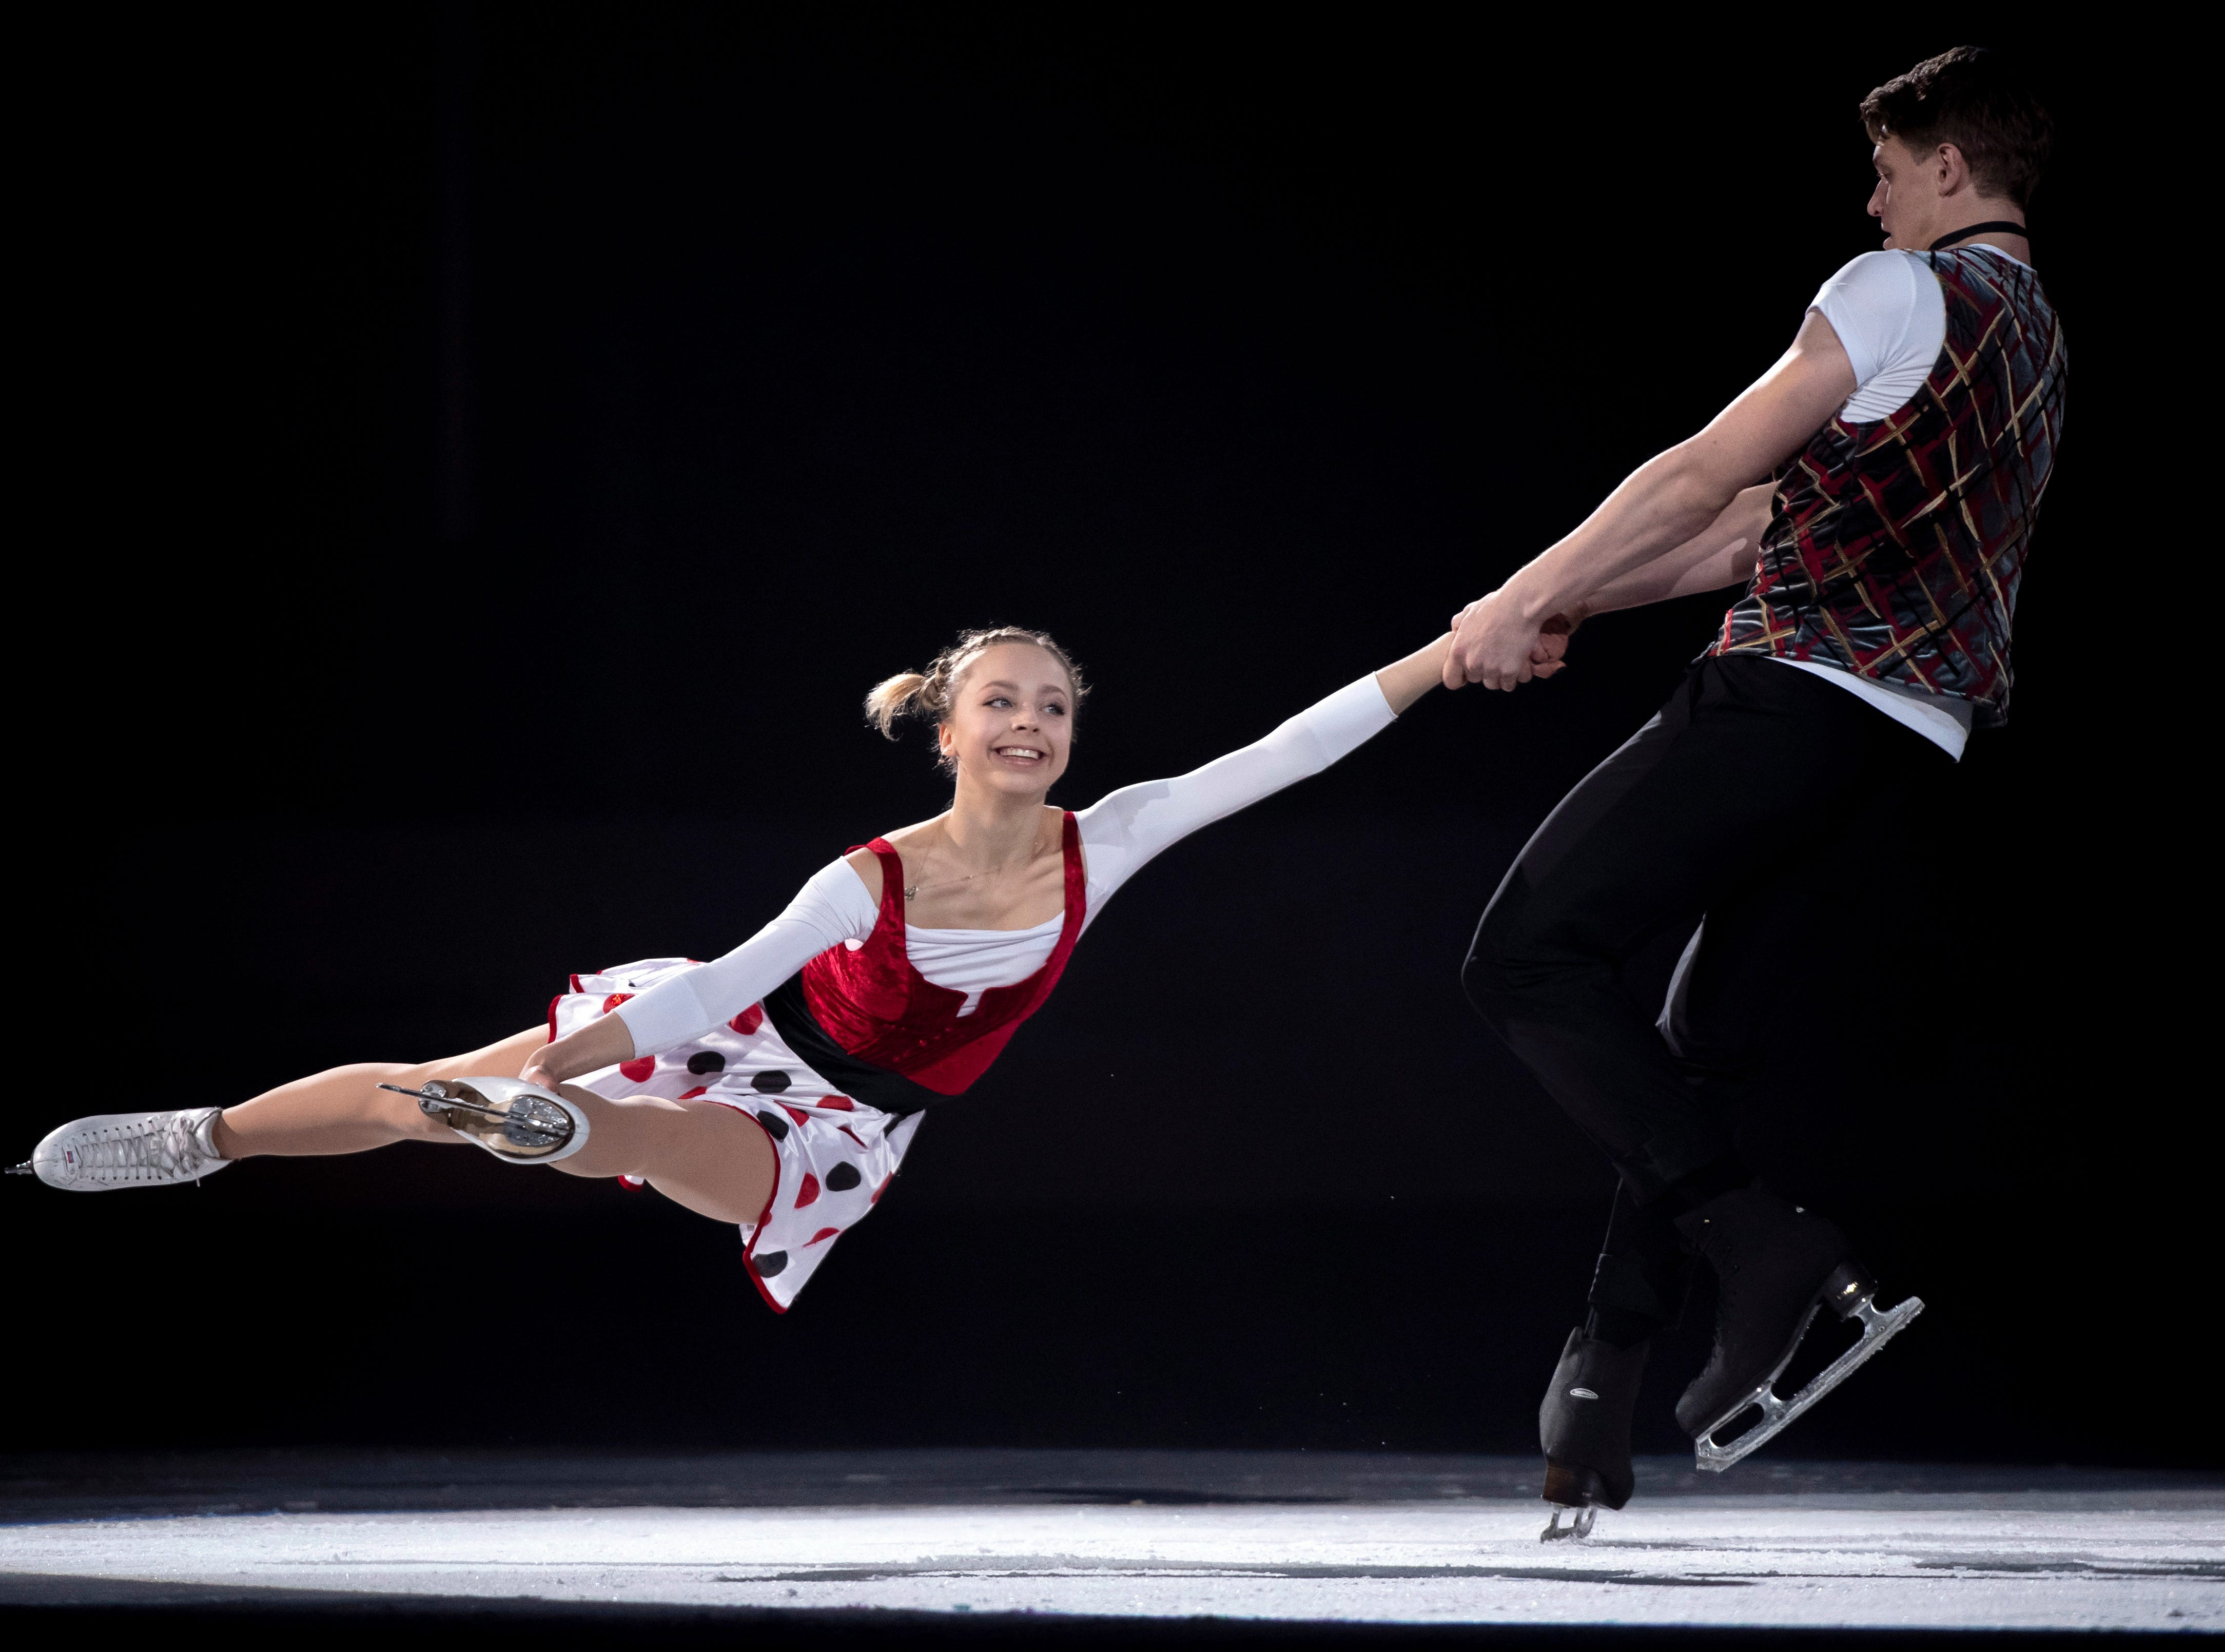 Aleksandra Boikova and Dmitrii Koslovsjii of Russia perform in the closing gala at Skate Canada International in Laval, Quebec, Sunday, Oct. 28, 2018.